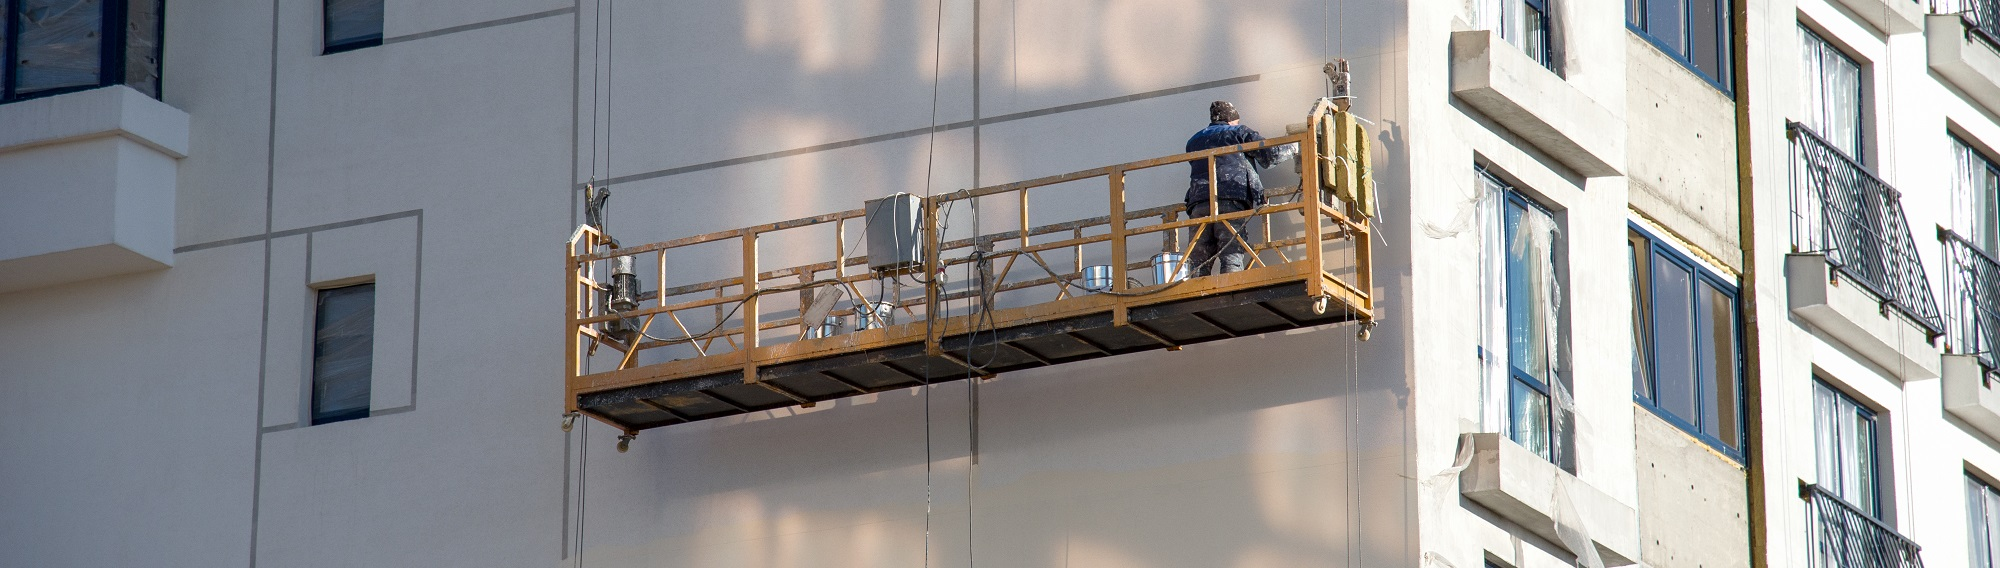 suspended scaffolding system on high rise